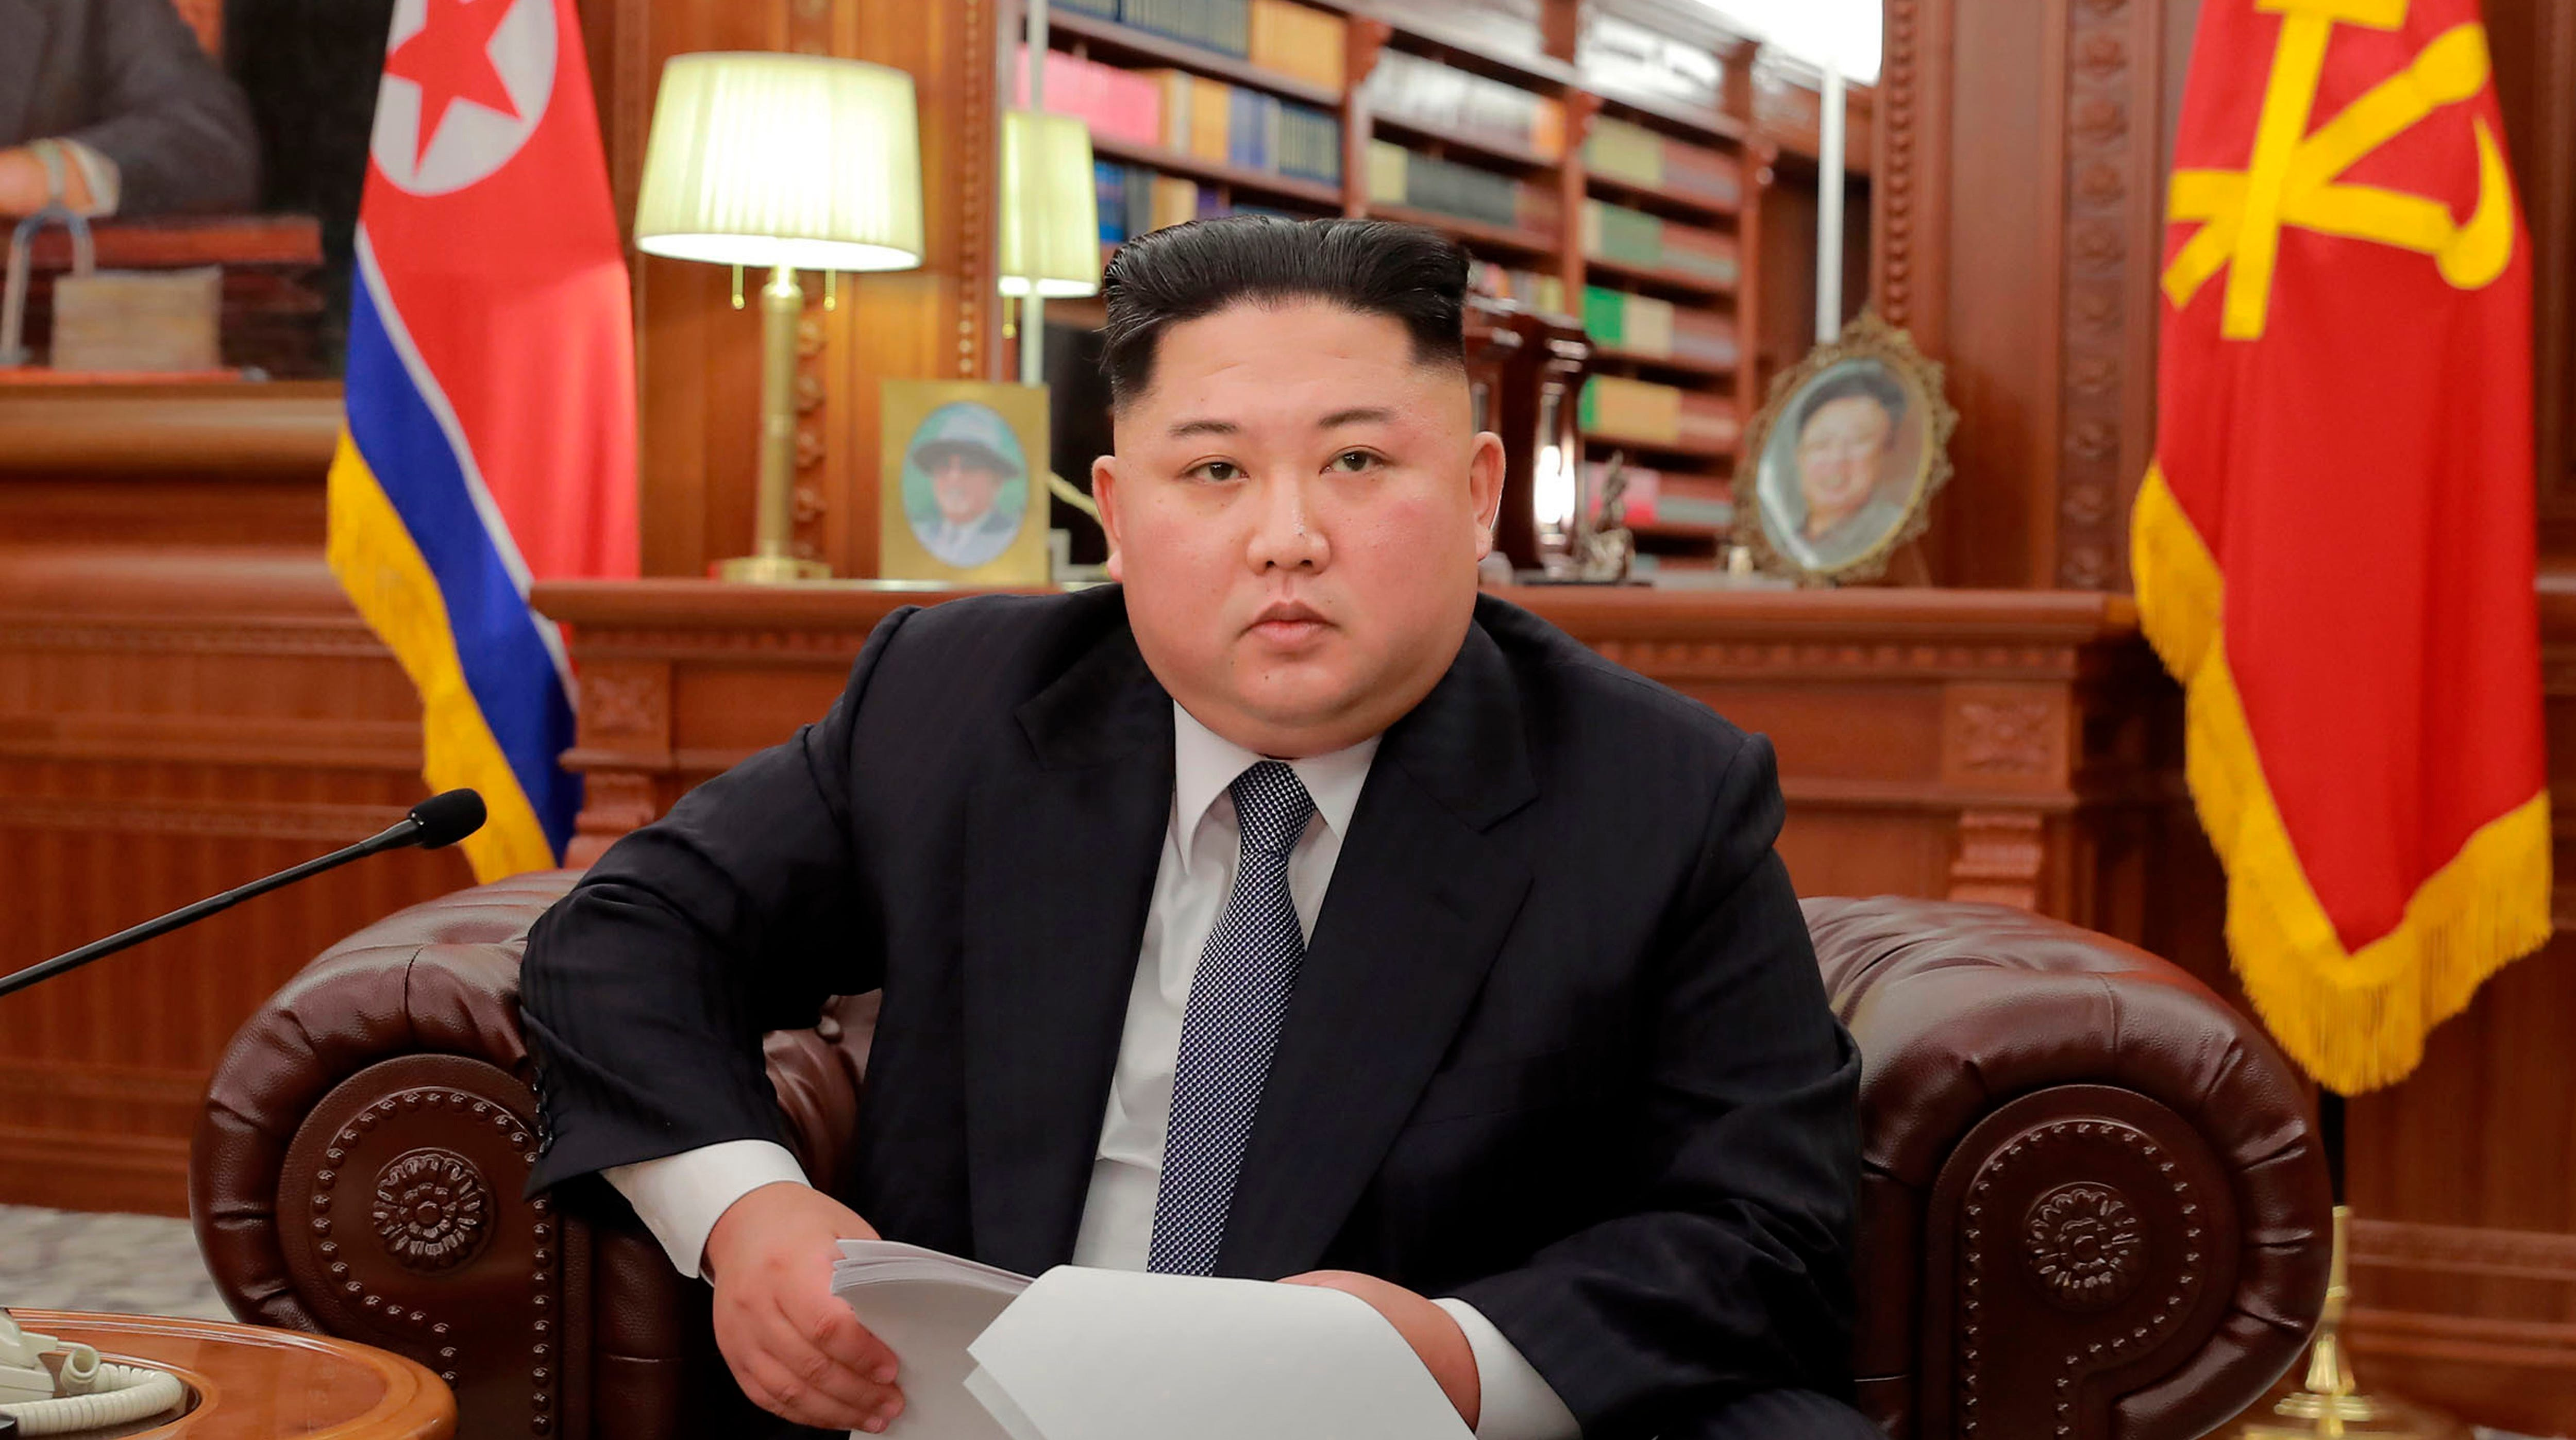 In this file photo released on Jan. 1, 2019, North Korean leader Kim Jong Un delivers a New Year's speech in North Korea.